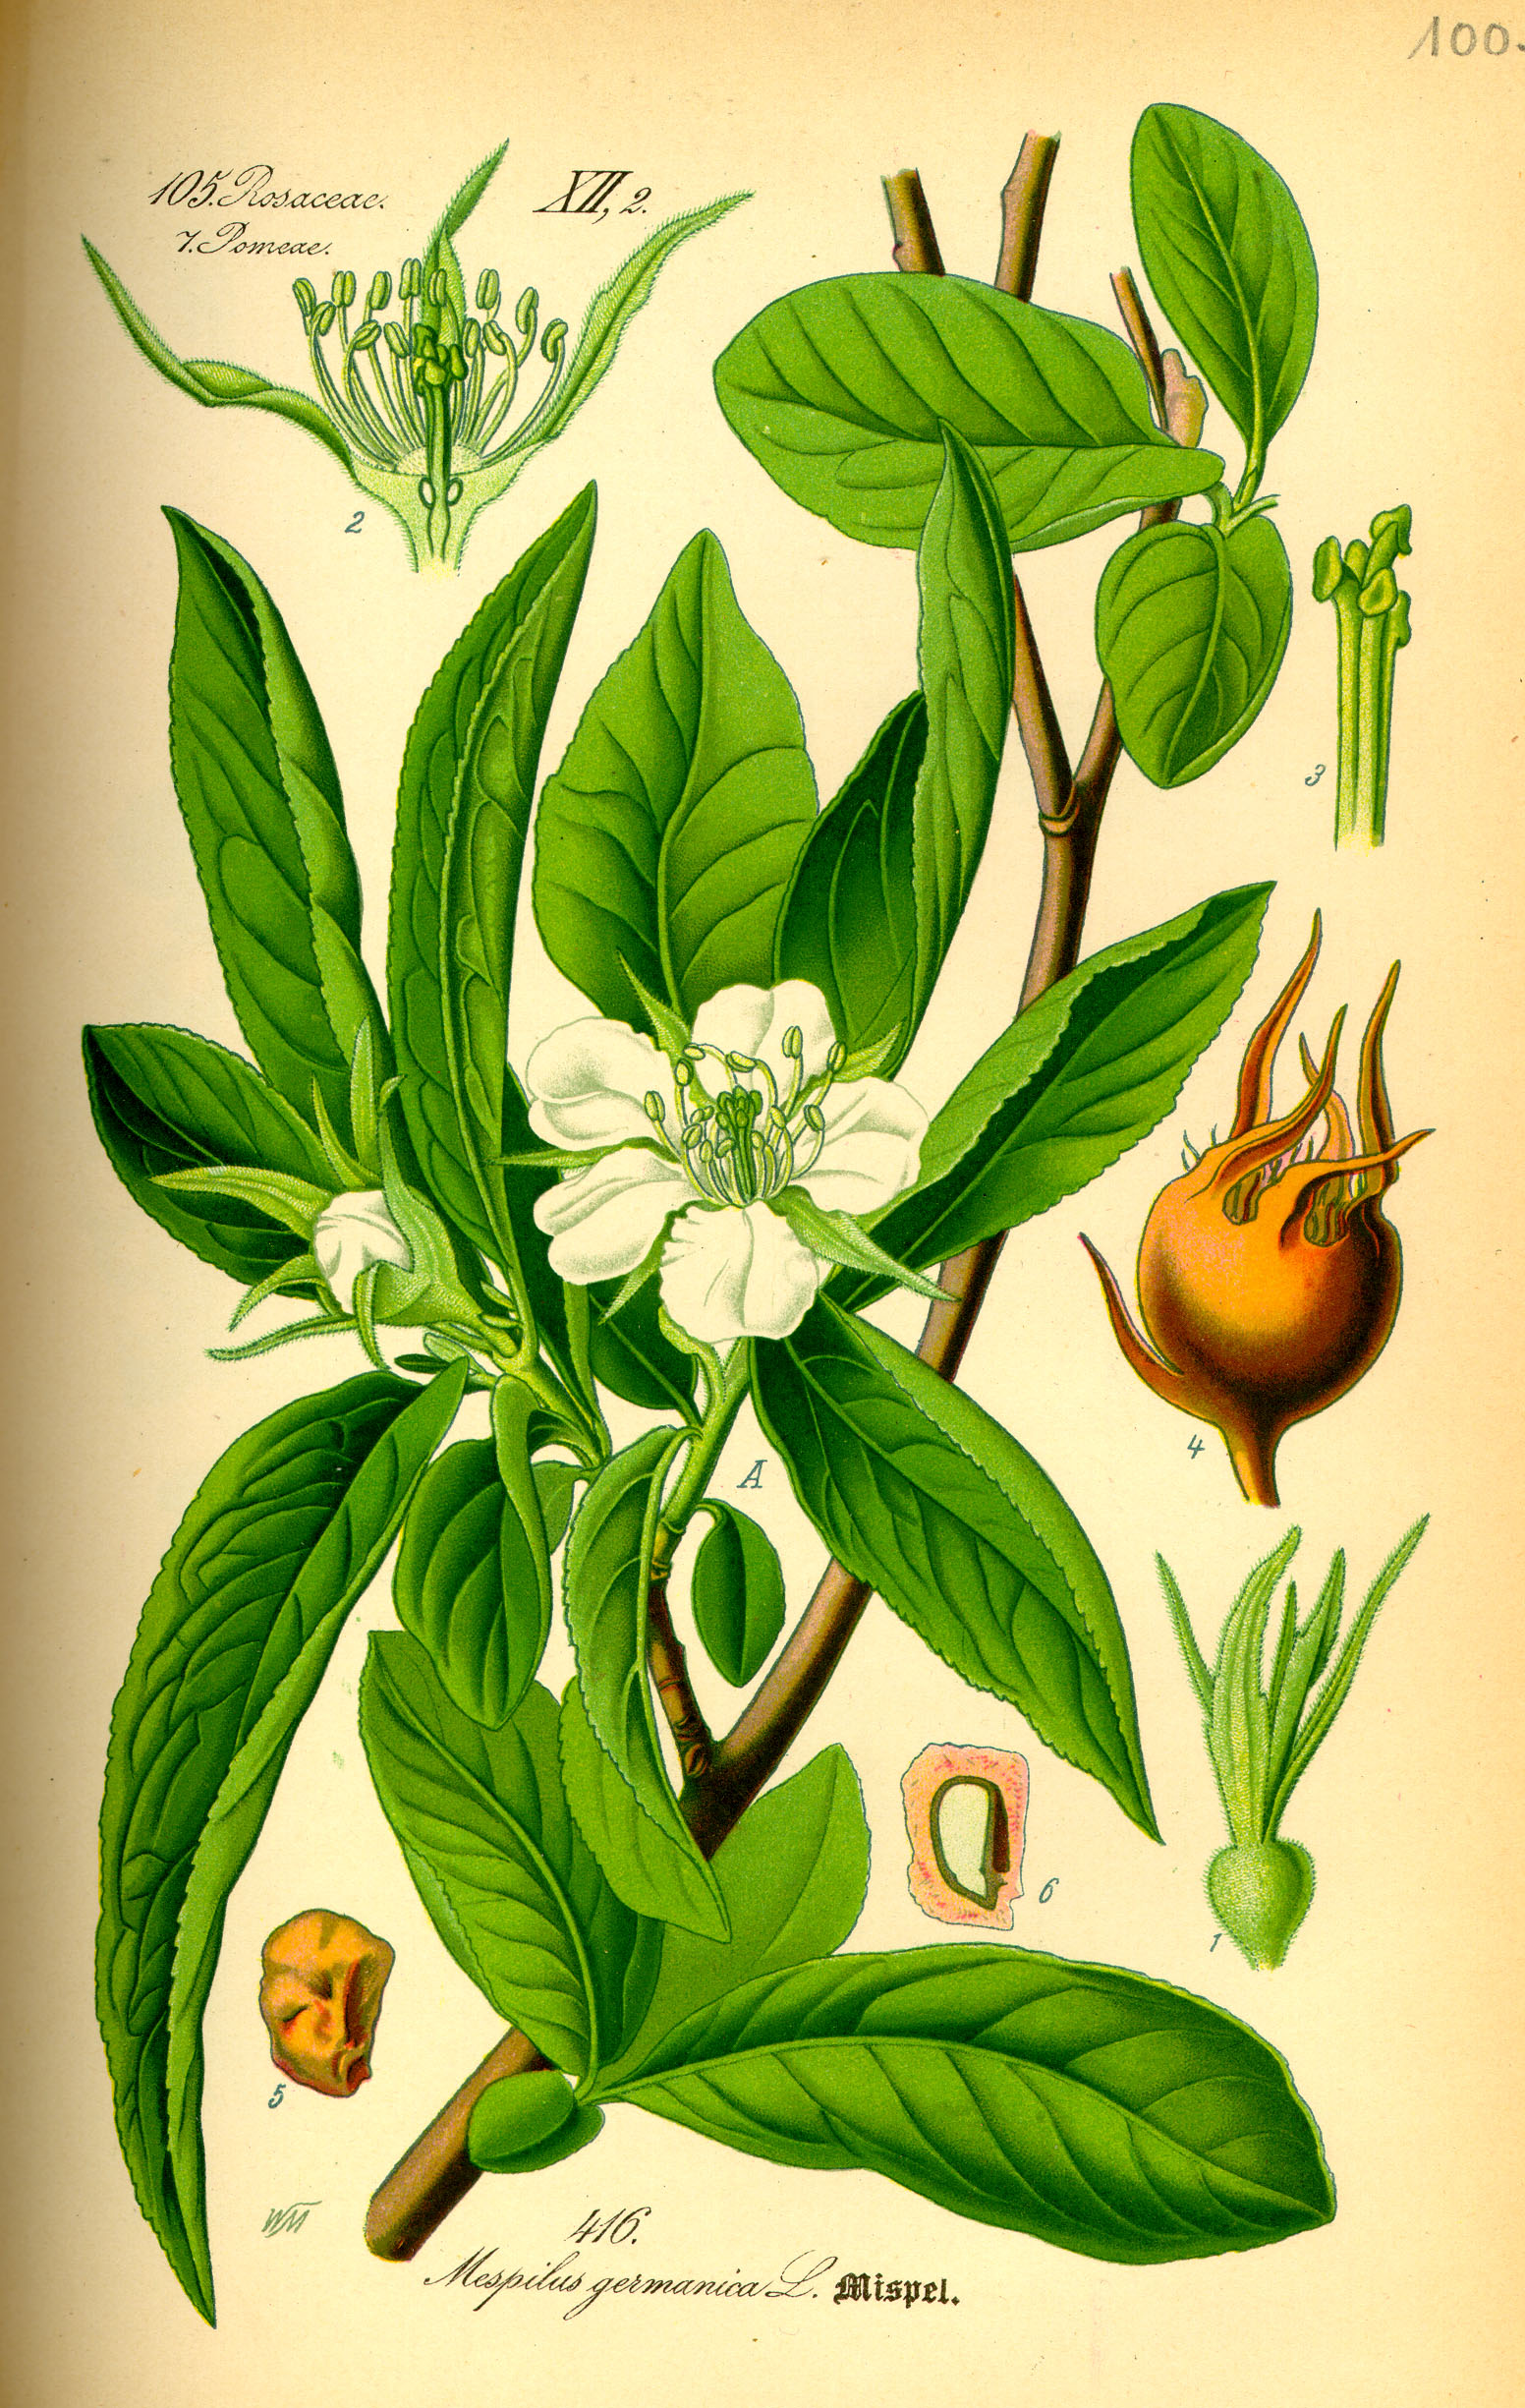 https://upload.wikimedia.org/wikipedia/commons/a/a5/Illustration_Mespilus_germanica0.jpg